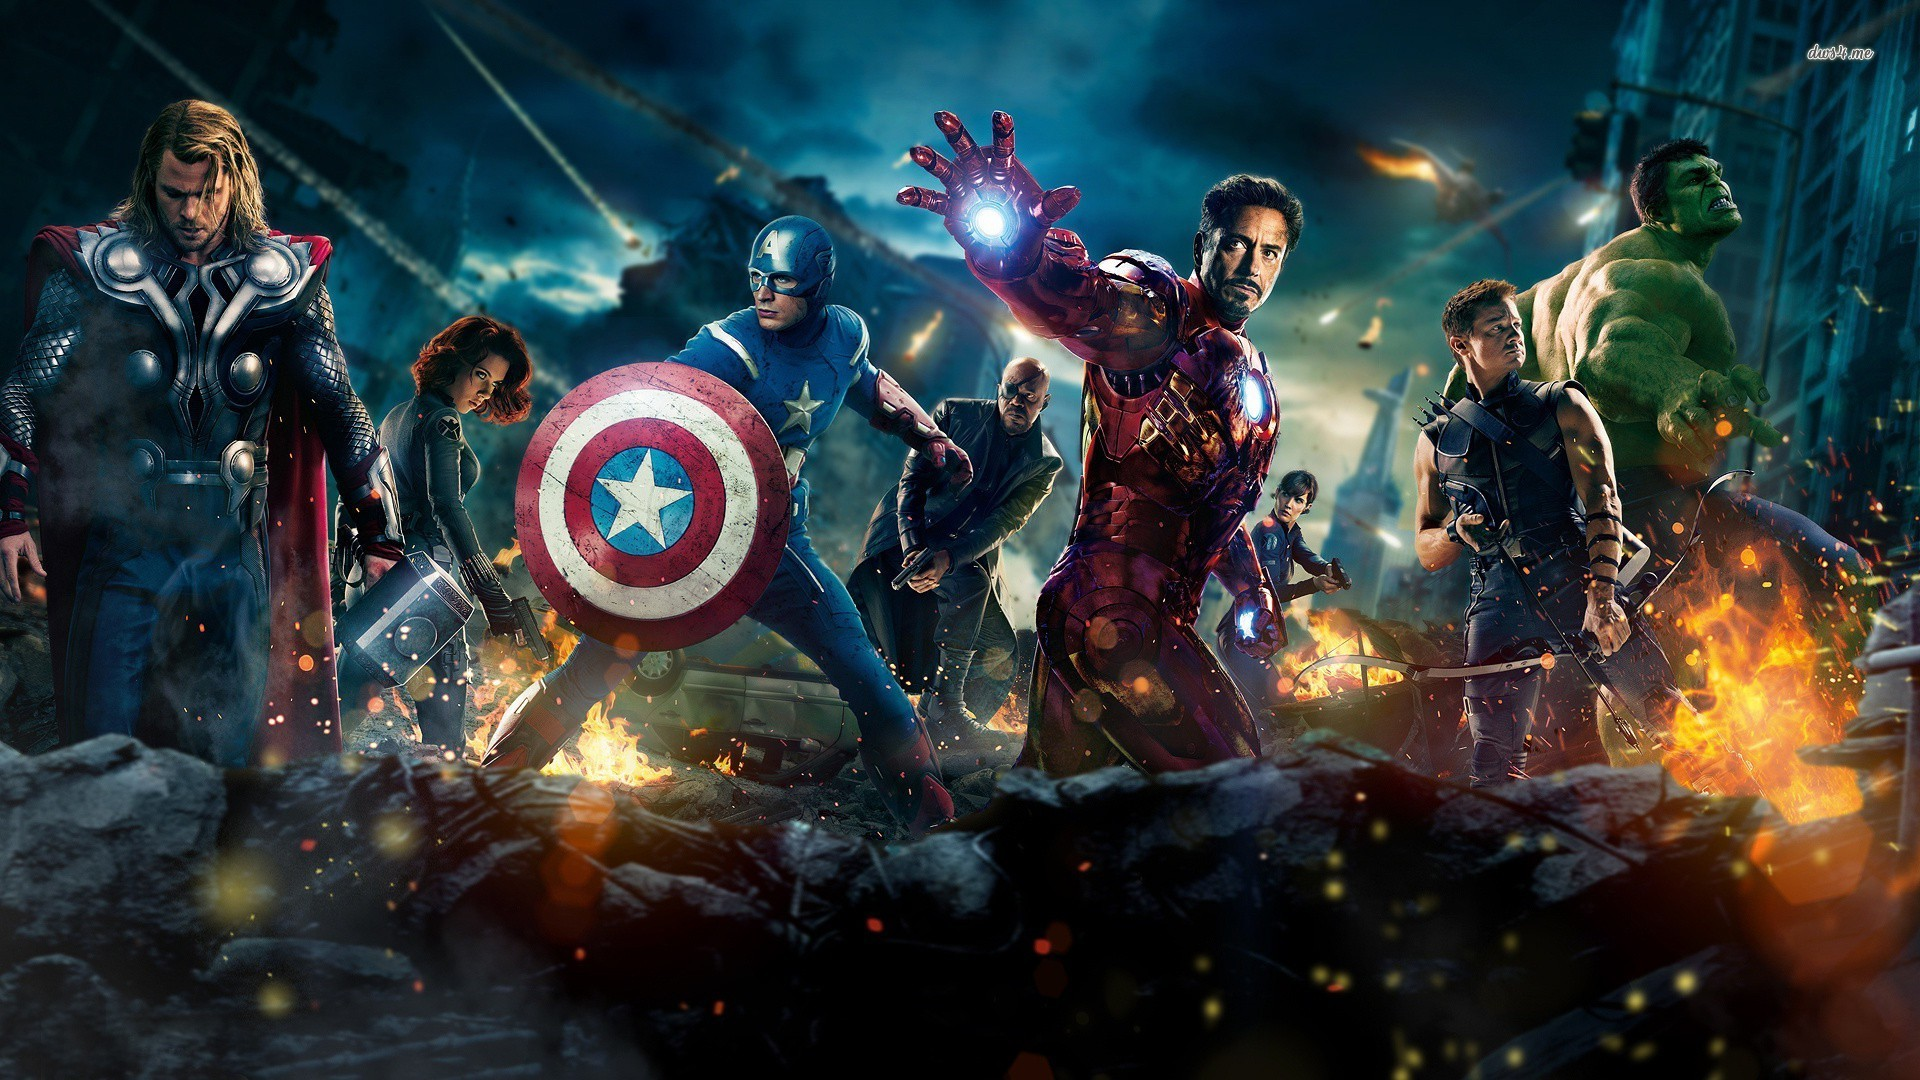 Photo of 7 Substantial Changes That Will Happen In The MCU After Avengers 4